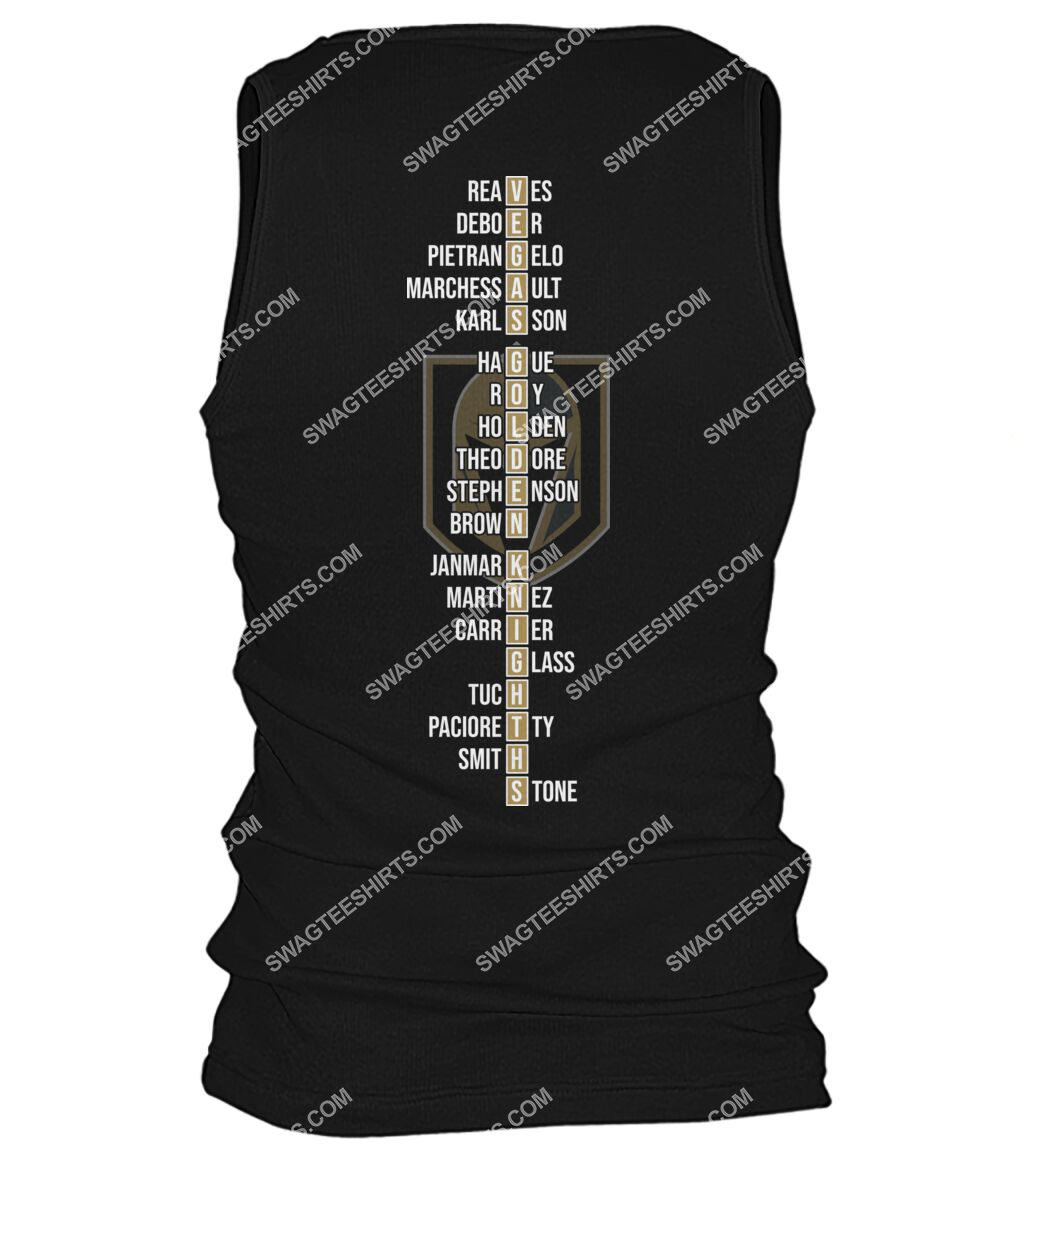 2021 west division champions vegas golden knights tank top - back 1